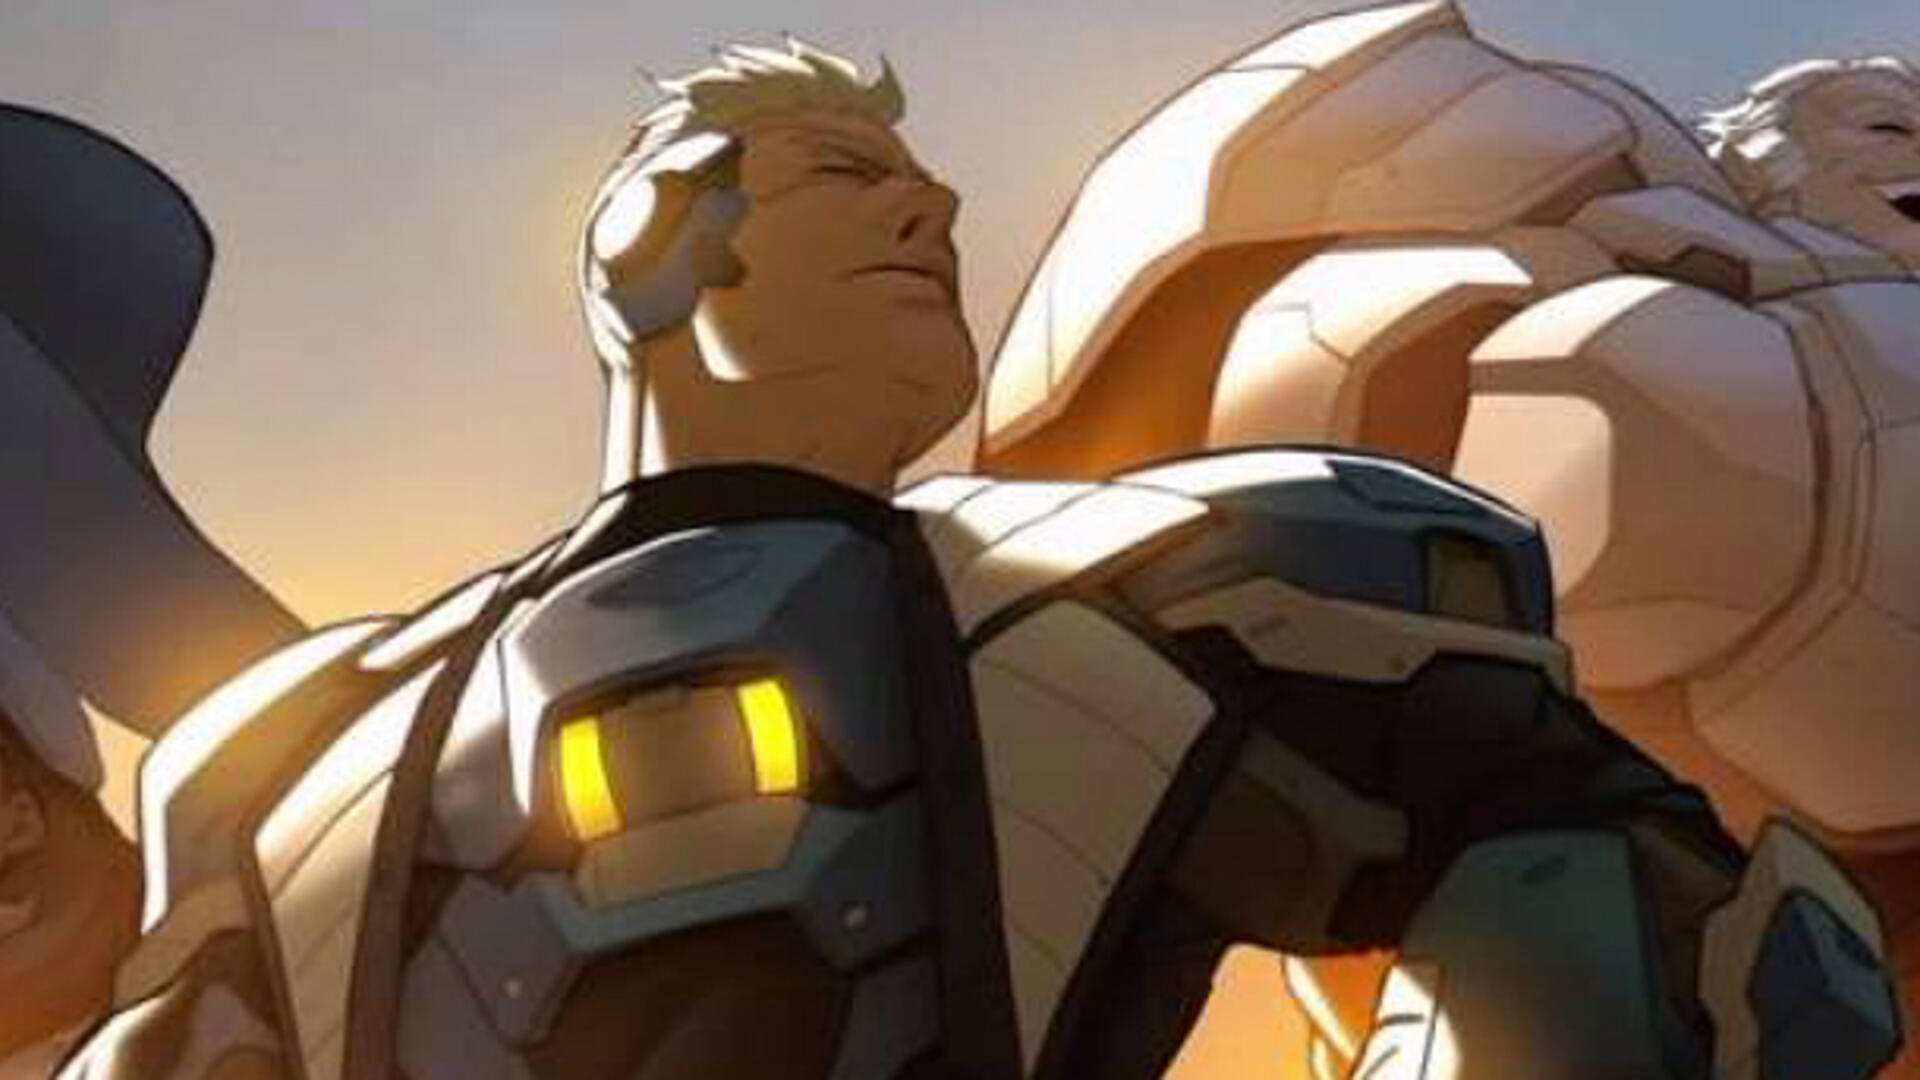 Blizzard Wants Intern For New Project With Knowledge of Overwatch